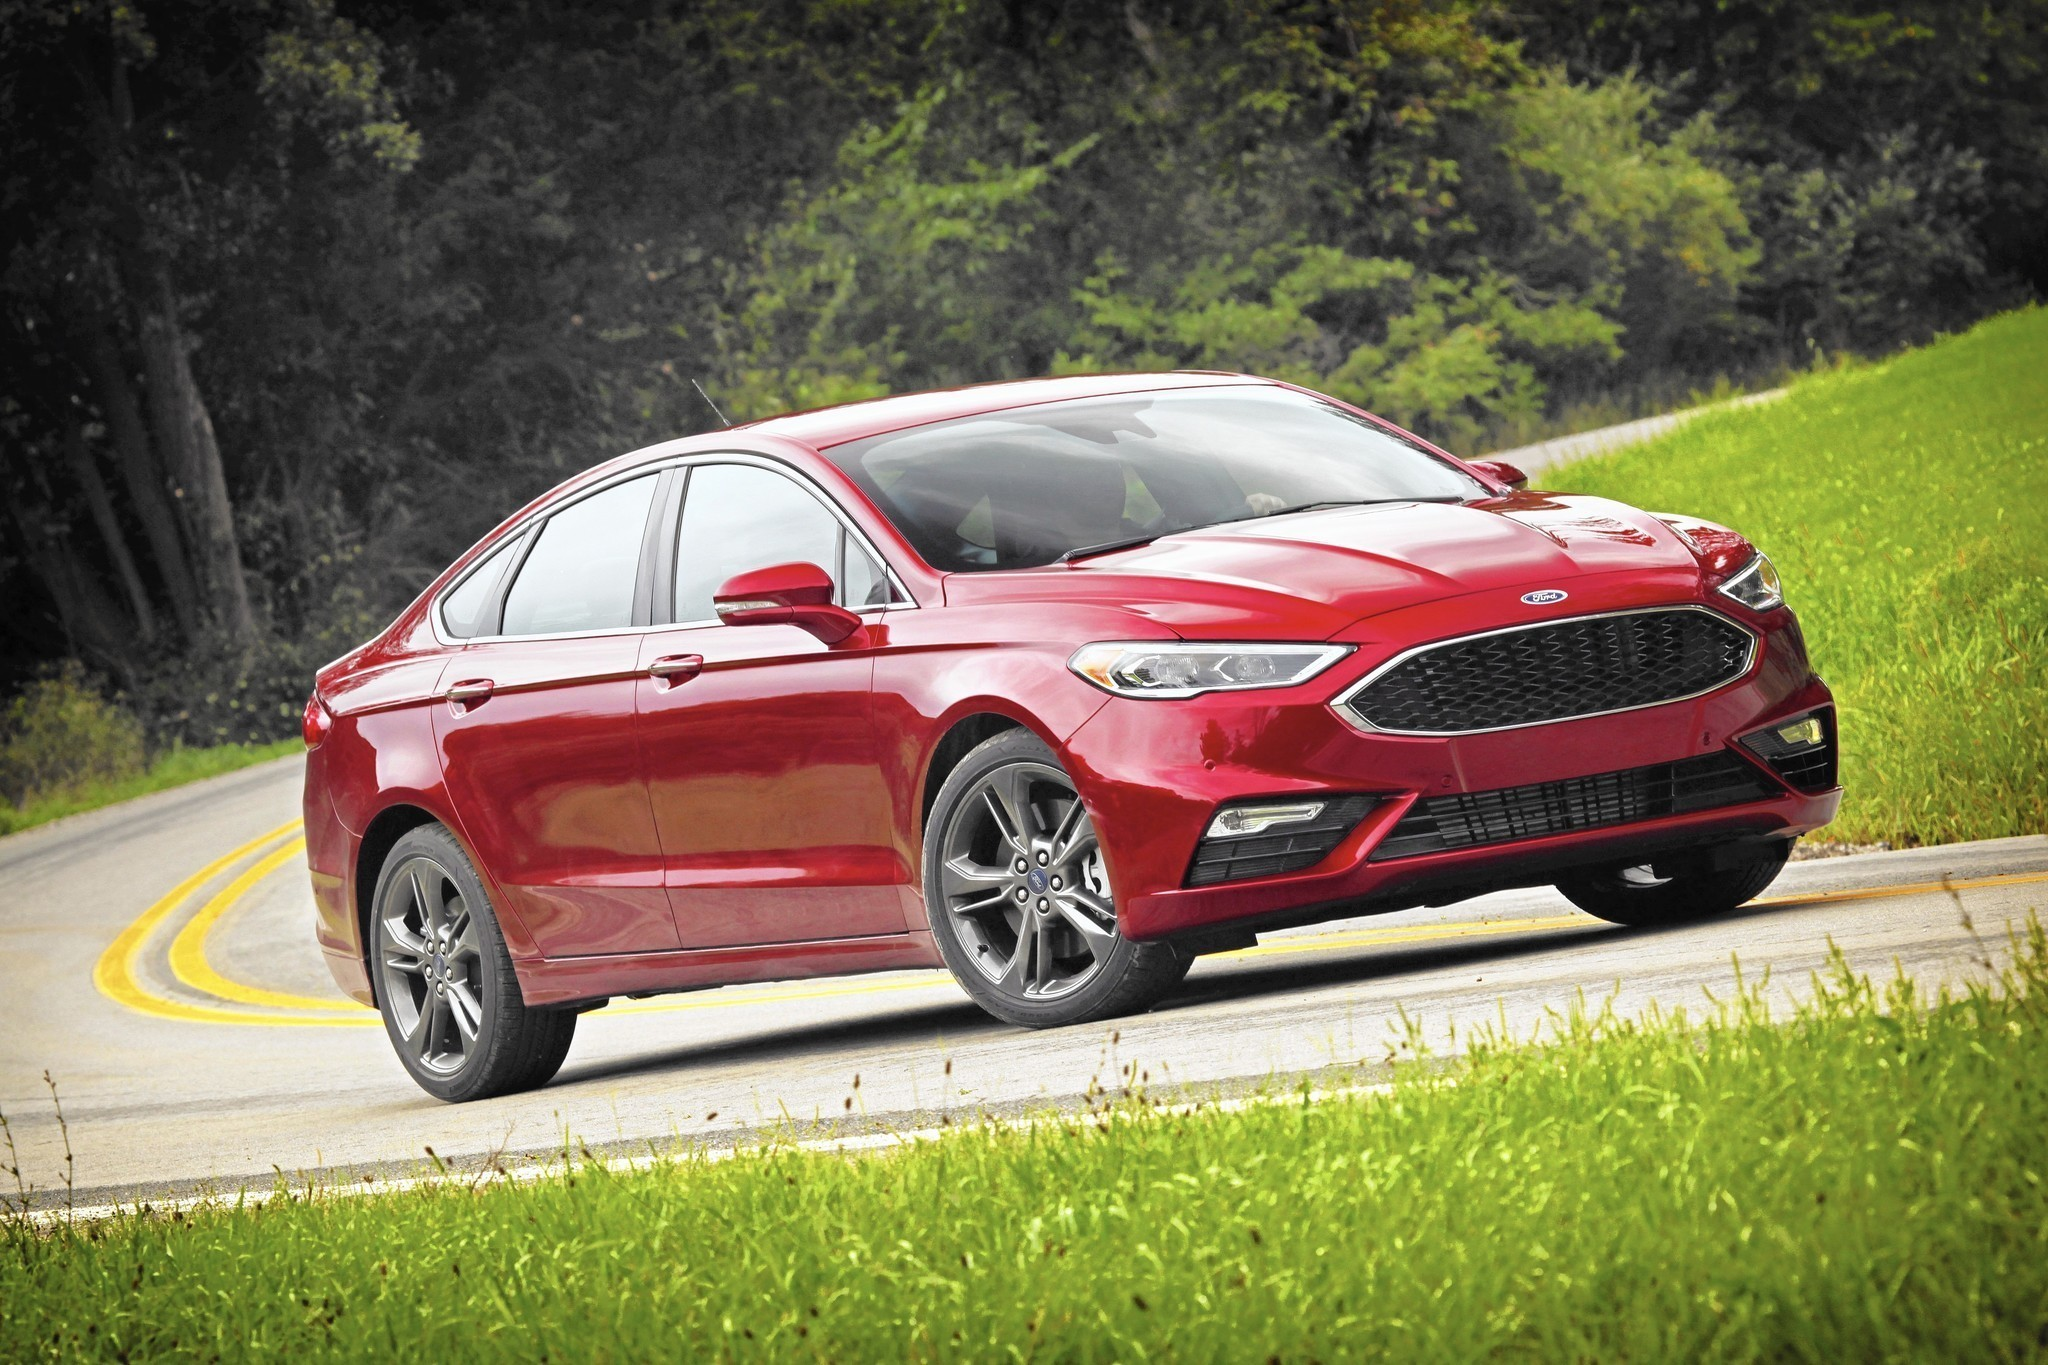 2017 ford fusion sport cuts subtle but significant edge in midsize sedan segment chicago tribune